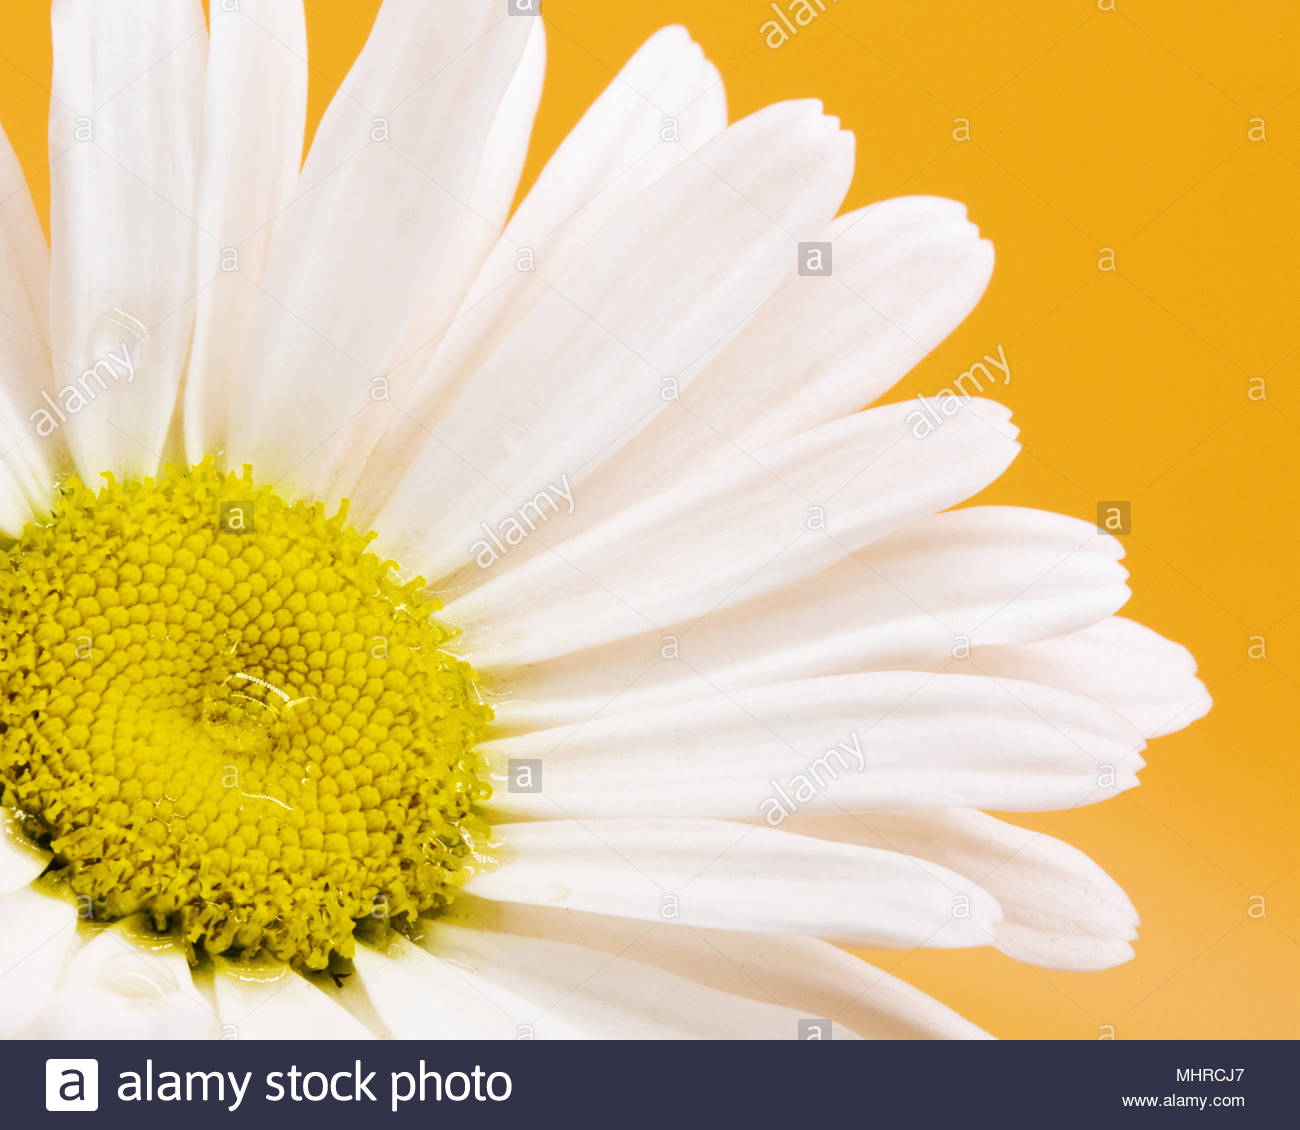 Daisy Flower Pictures Stock Photos Daisy Flower Pictures Stock